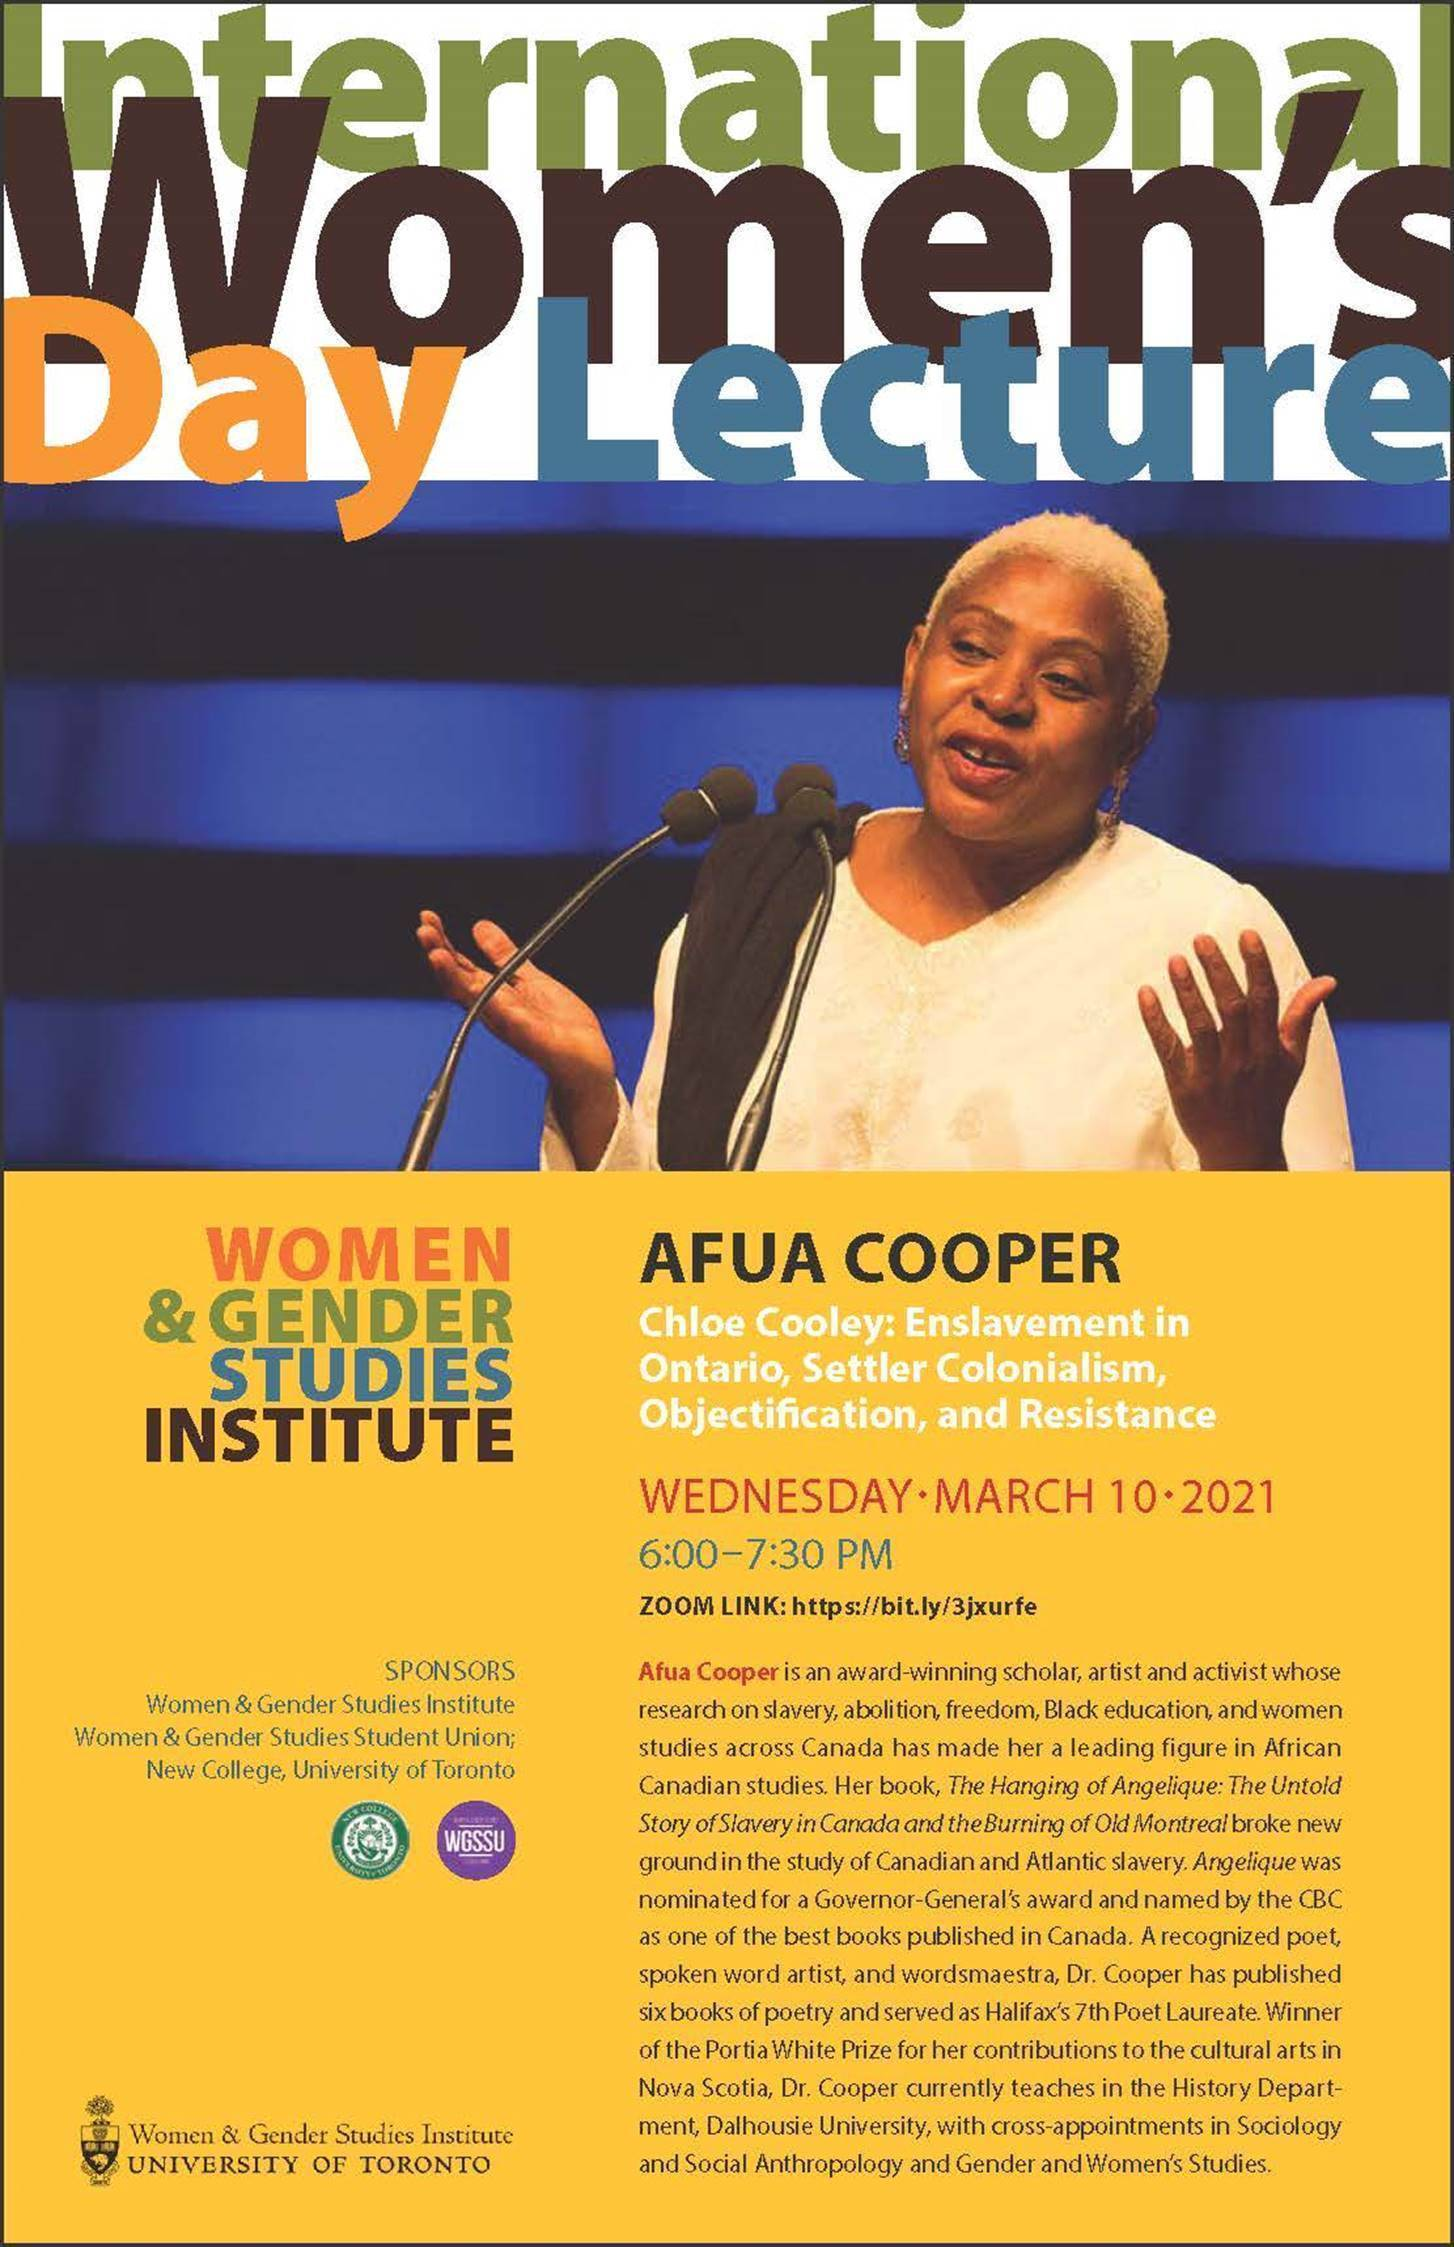 Dr. Afua Cooper at the Women & Gender Studies Institute